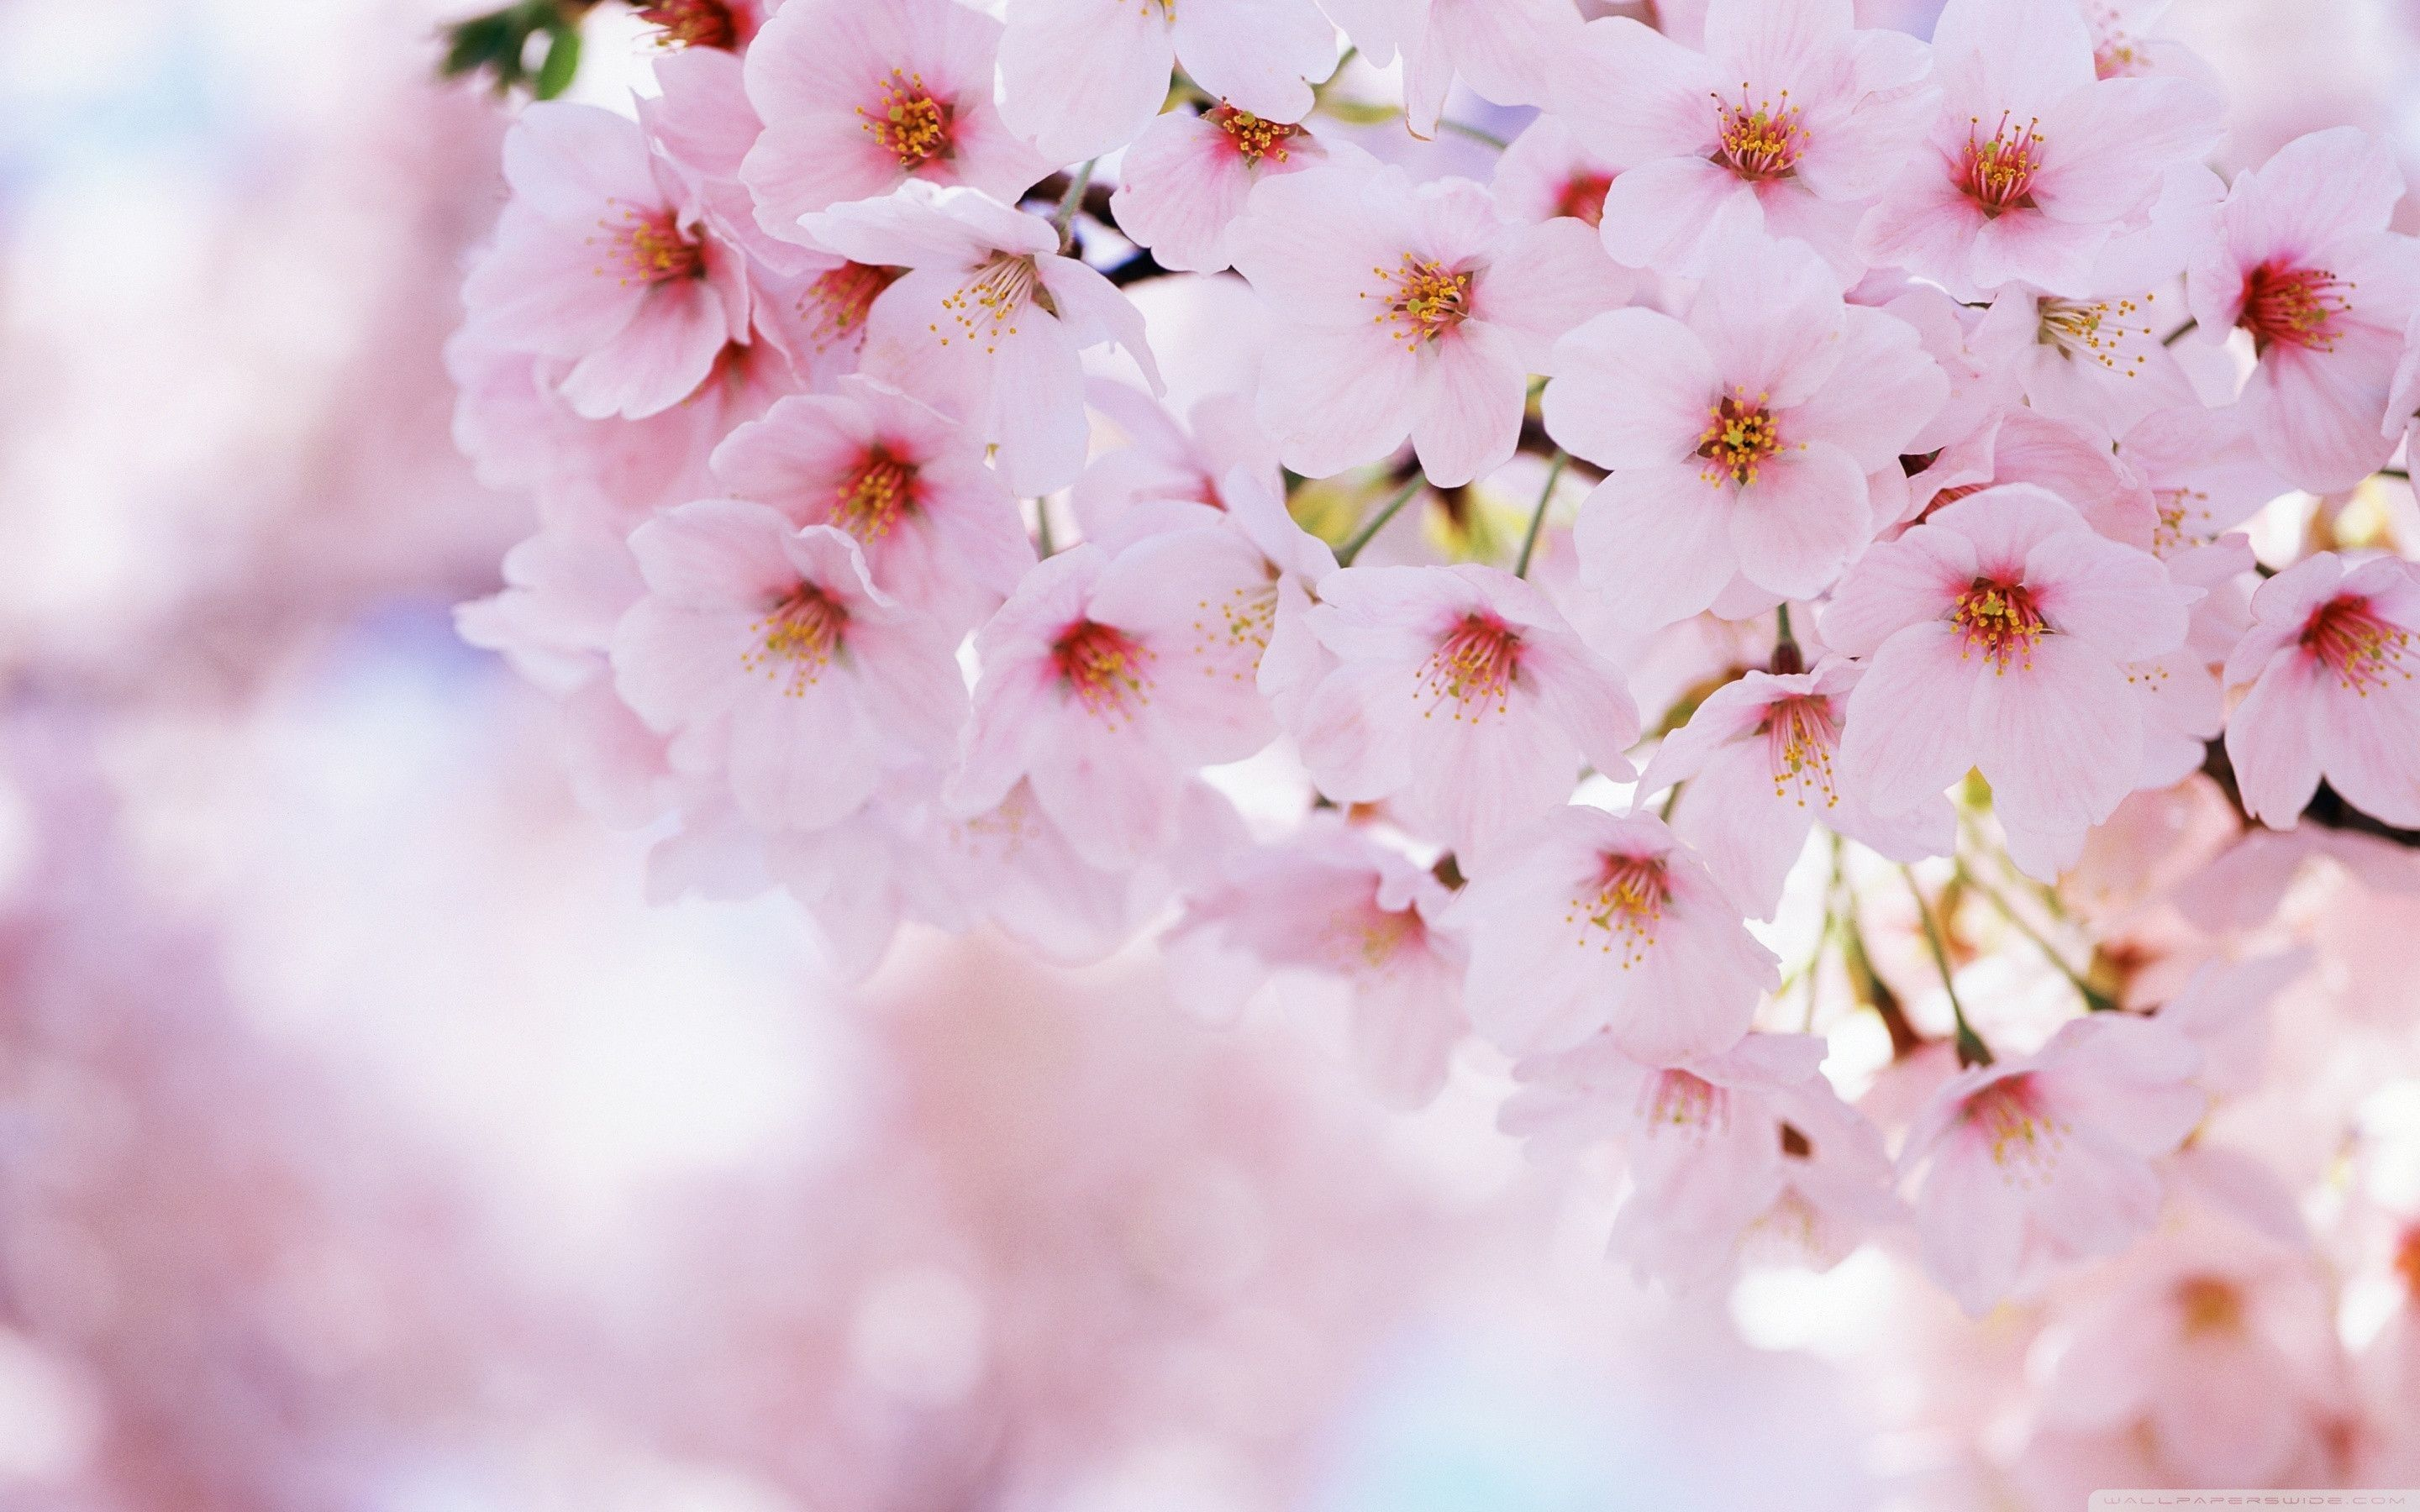 Hd wallpapers and background images. Aesthetic Cherry Blossom Landscape Wallpapers - Wallpaper Cave